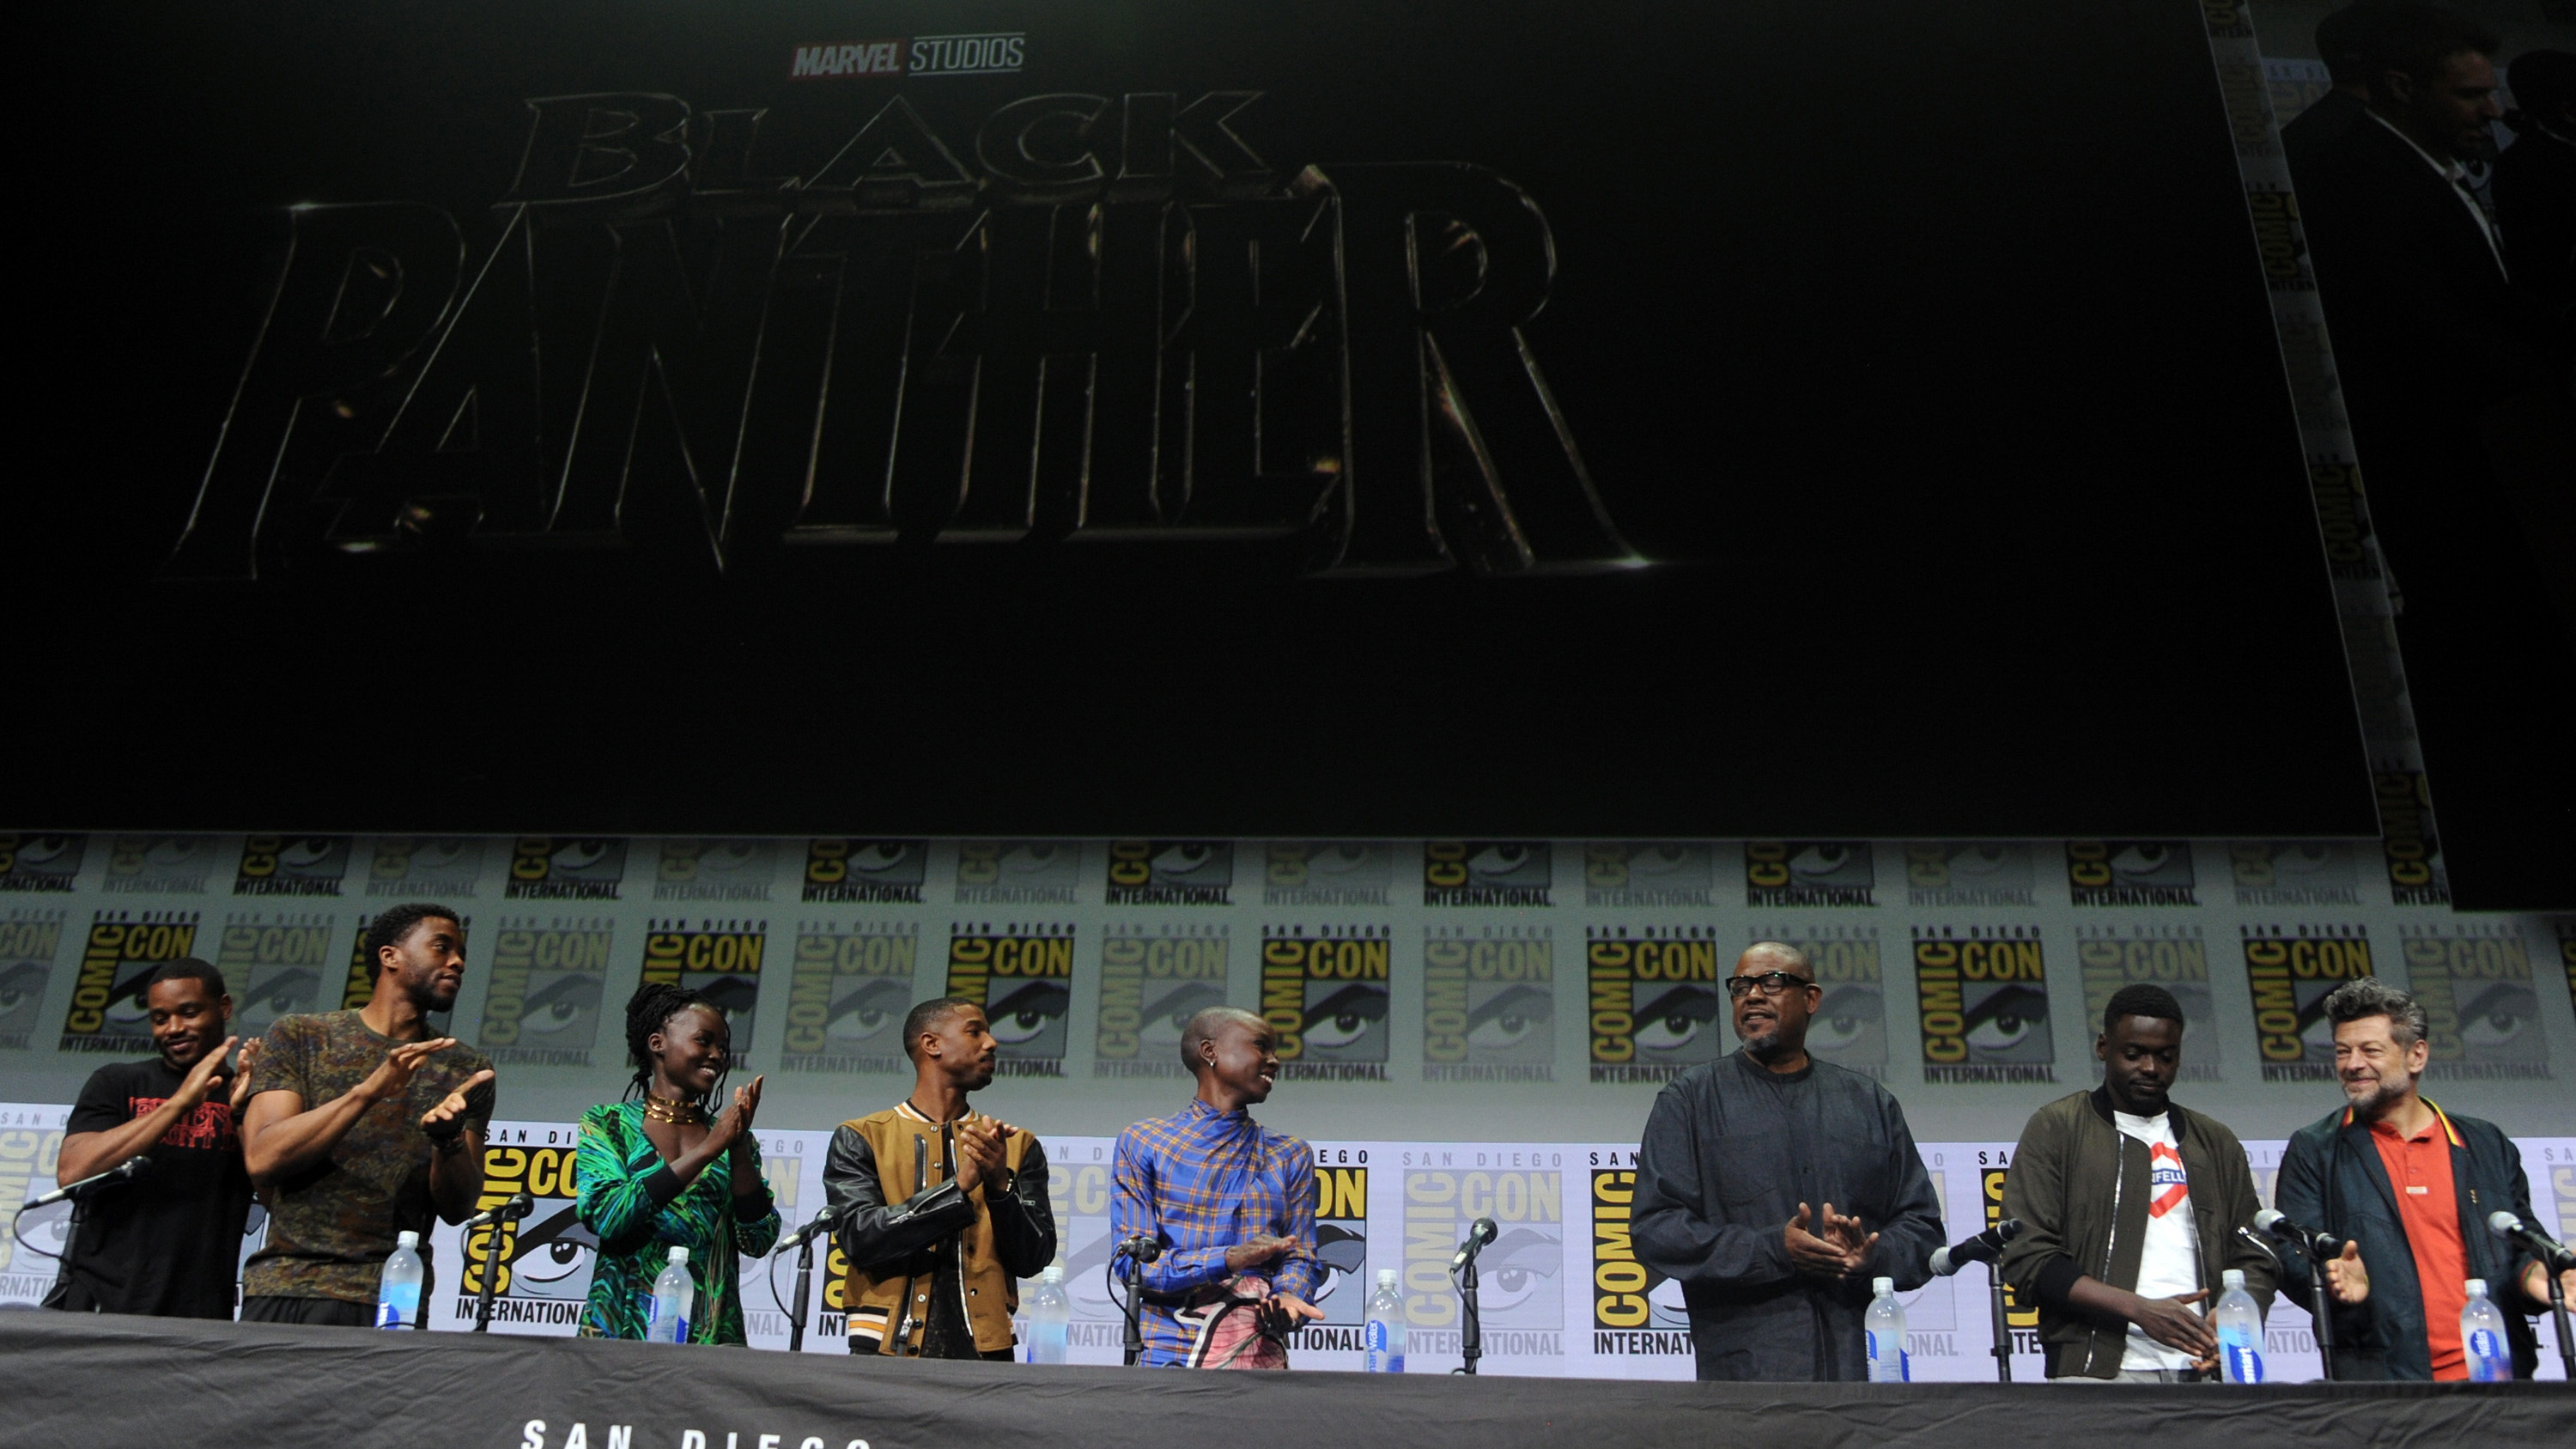 Comic-Con International 2017 – Marvel Studios Presentation